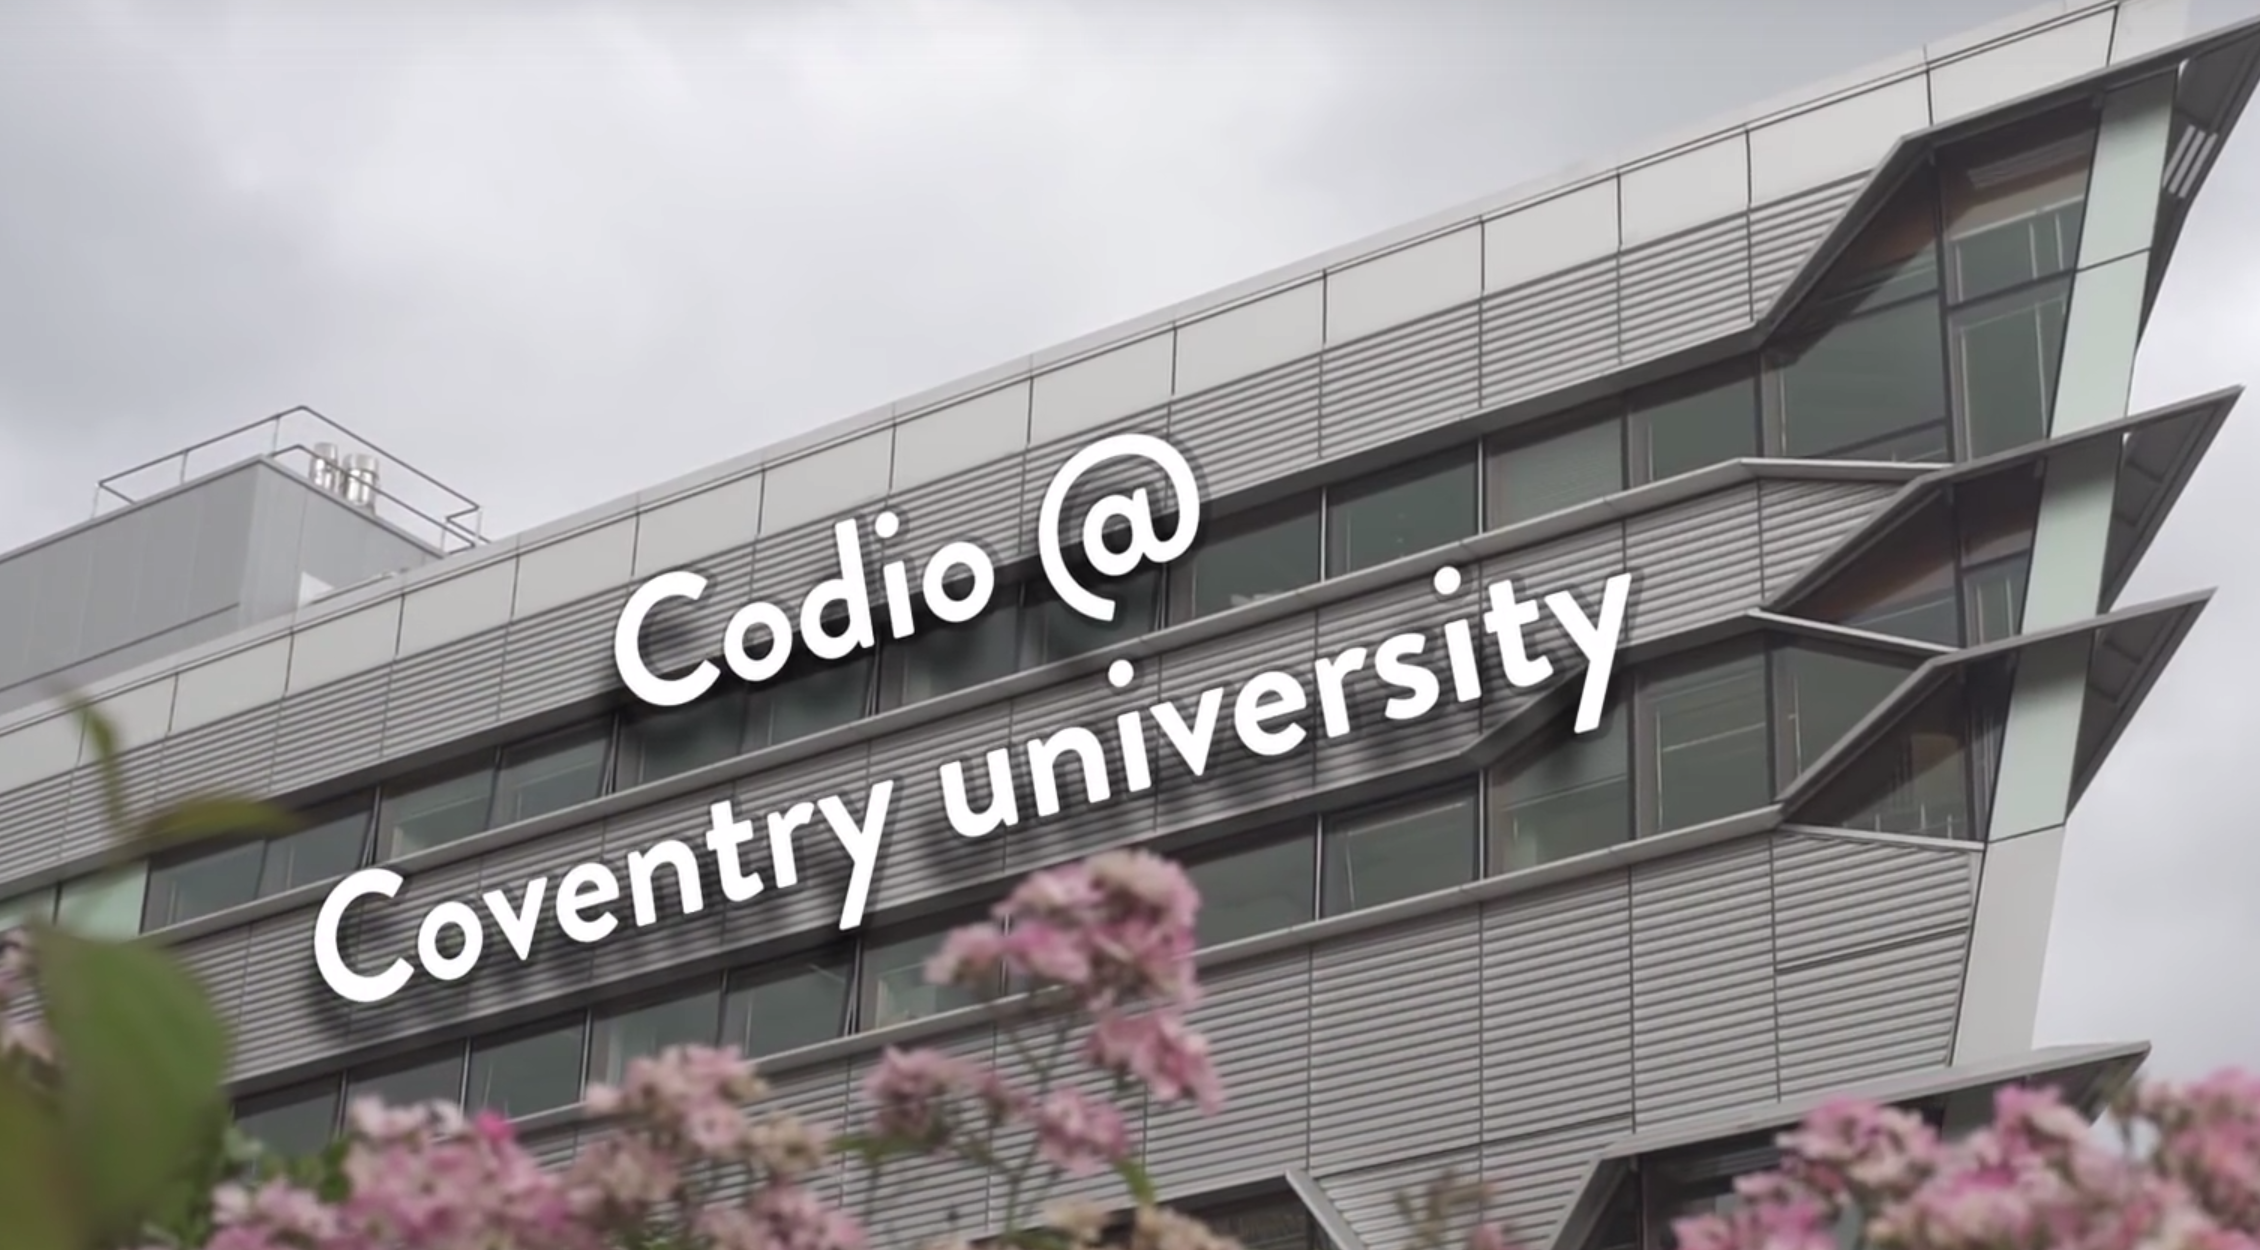 Codio is used at leading University such as Coventry University